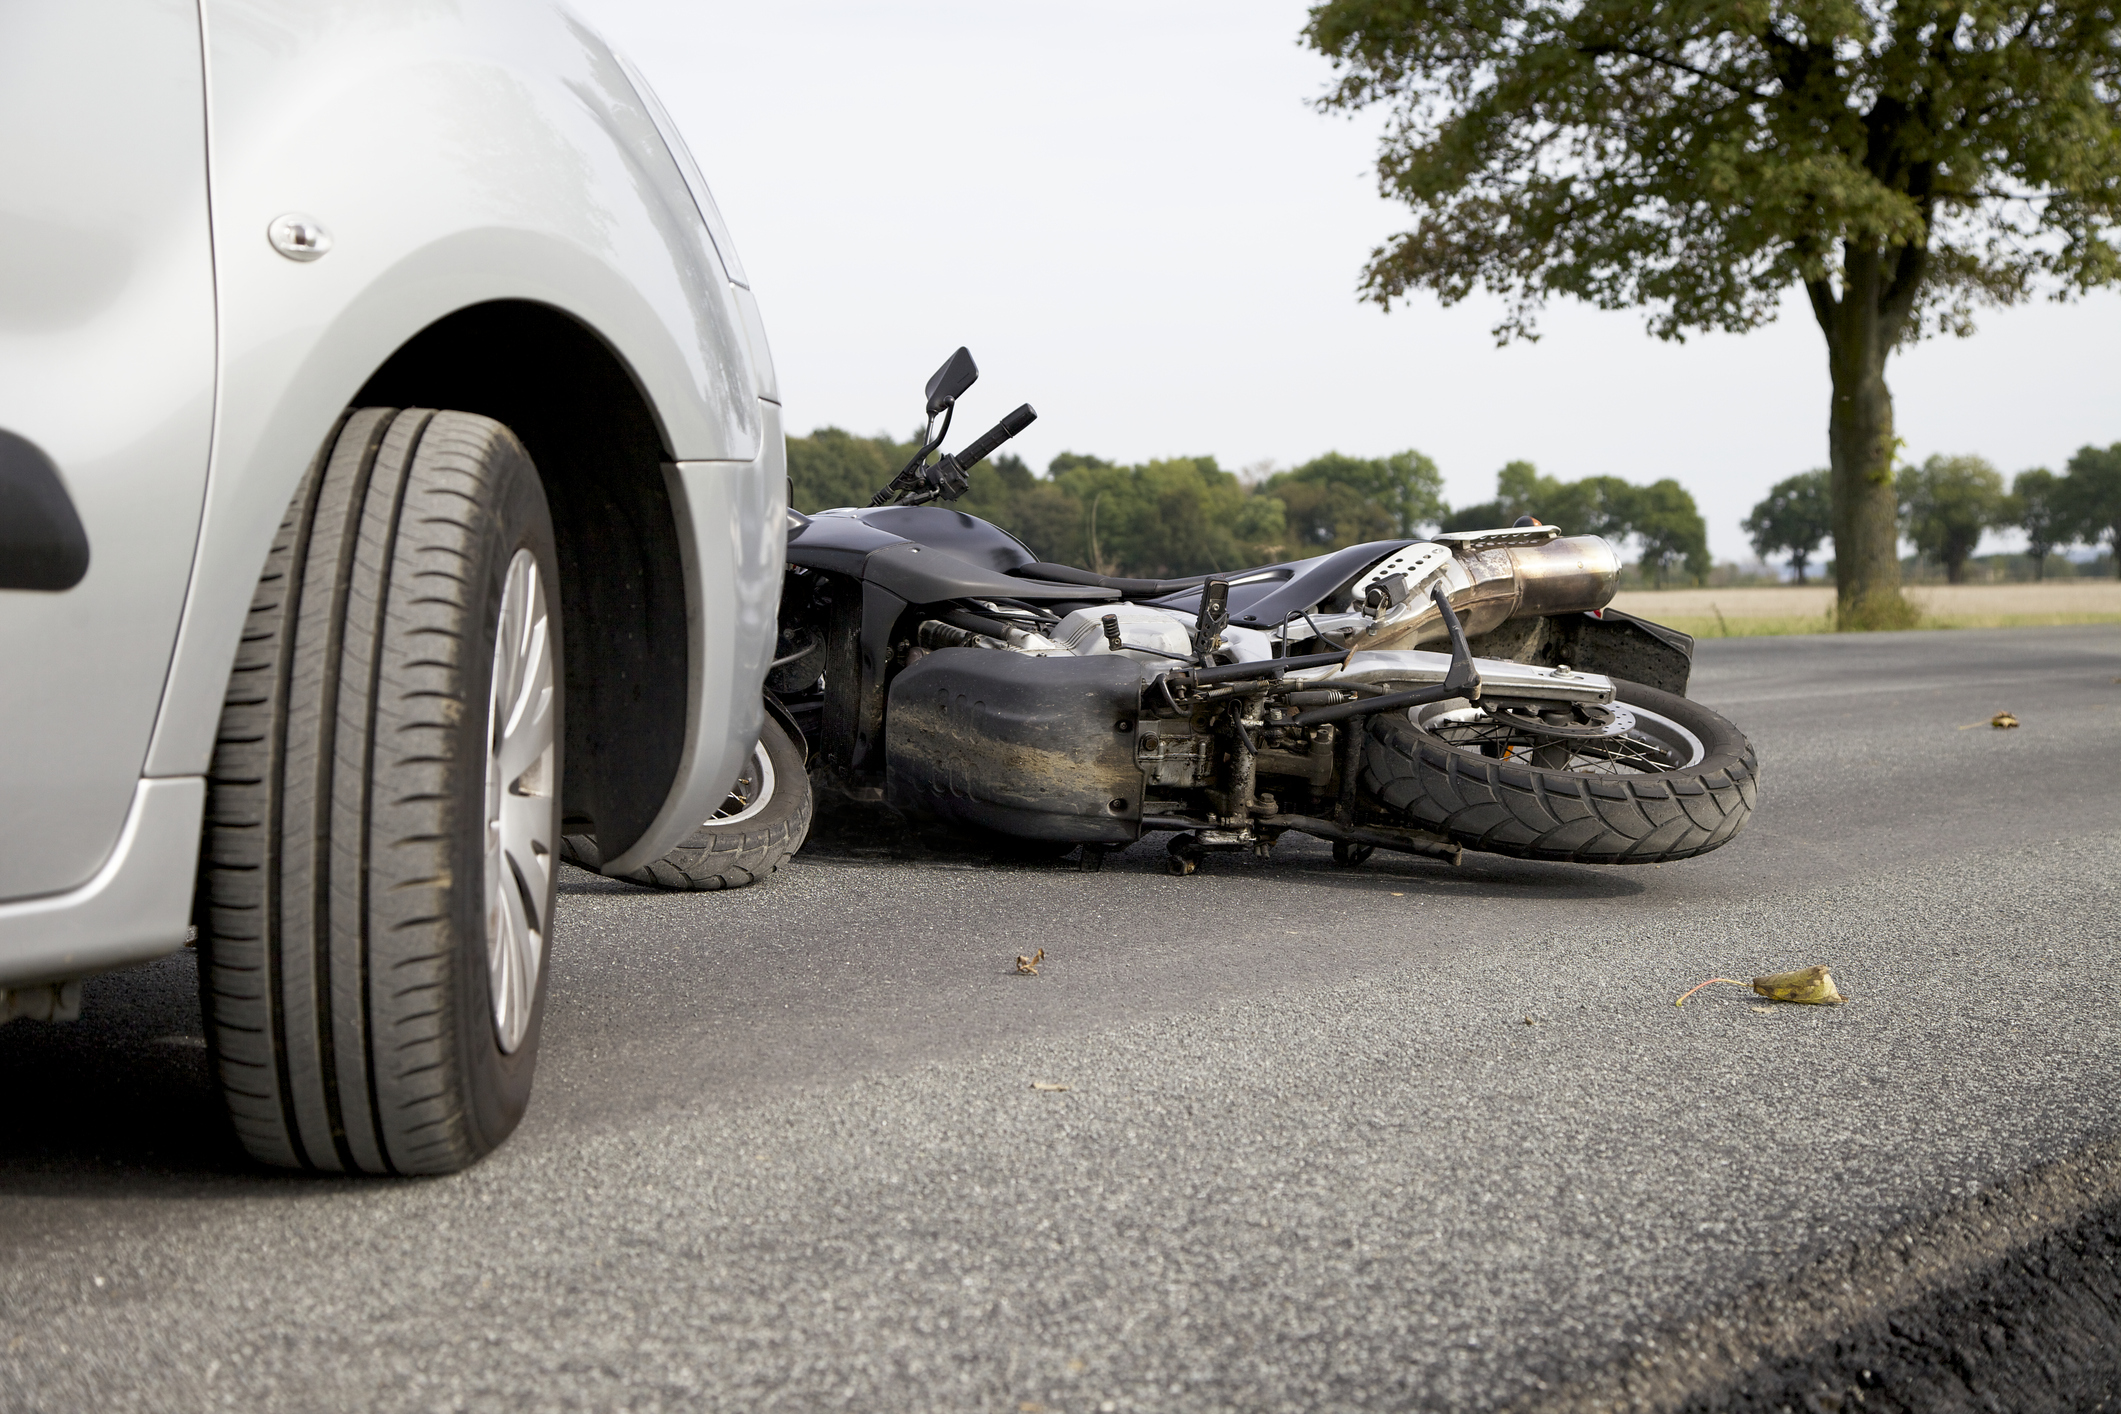 Motorcycle Accident Reconstruction